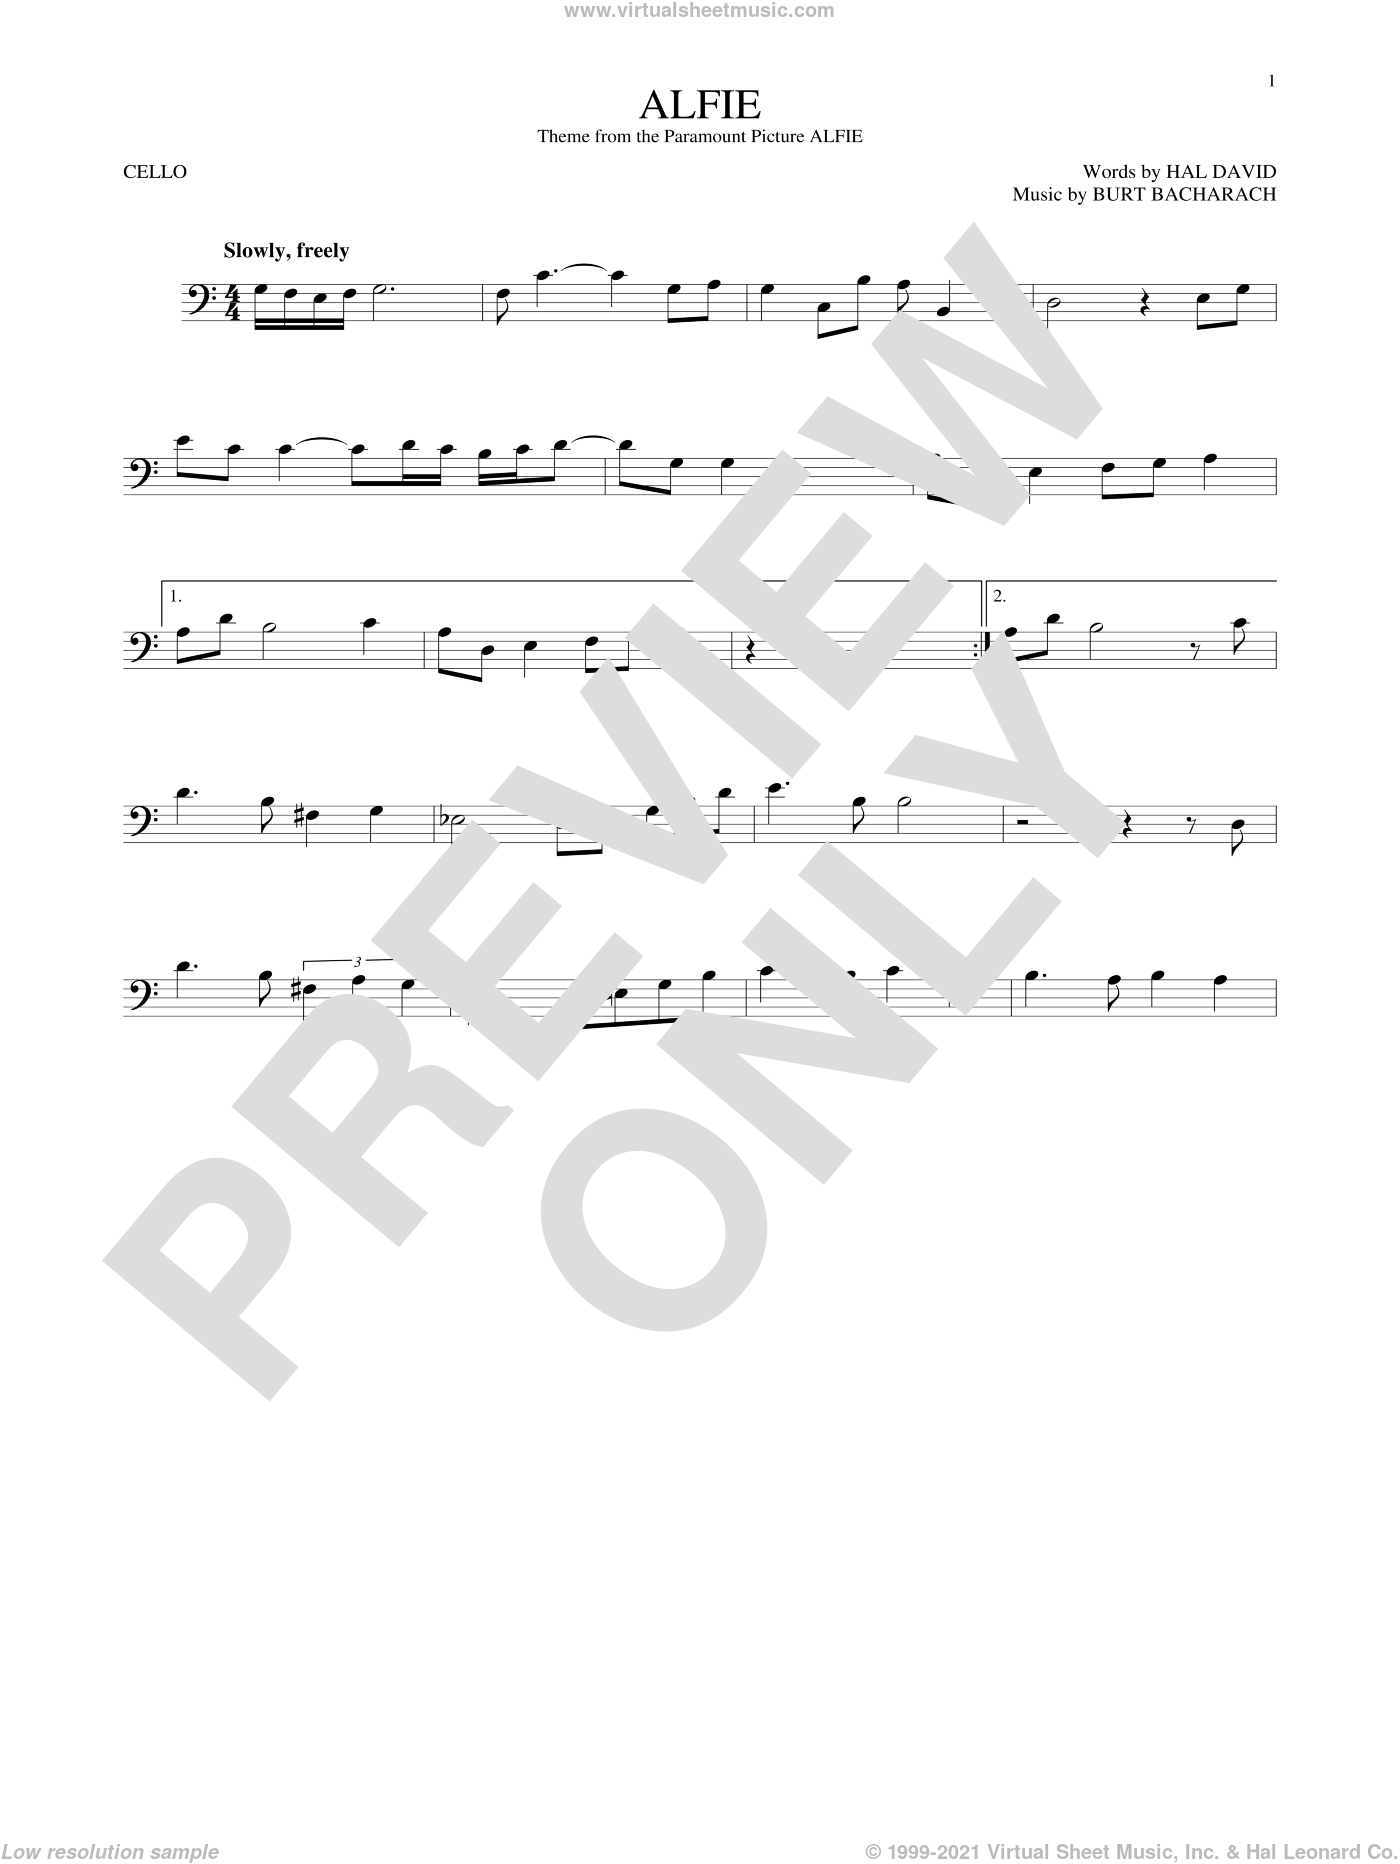 Alfie sheet music for cello solo by Dionne Warwick, Cher, Miscellaneous, Sonny Rollins, Stevie Wonder, Burt Bacharach and Hal David, intermediate skill level